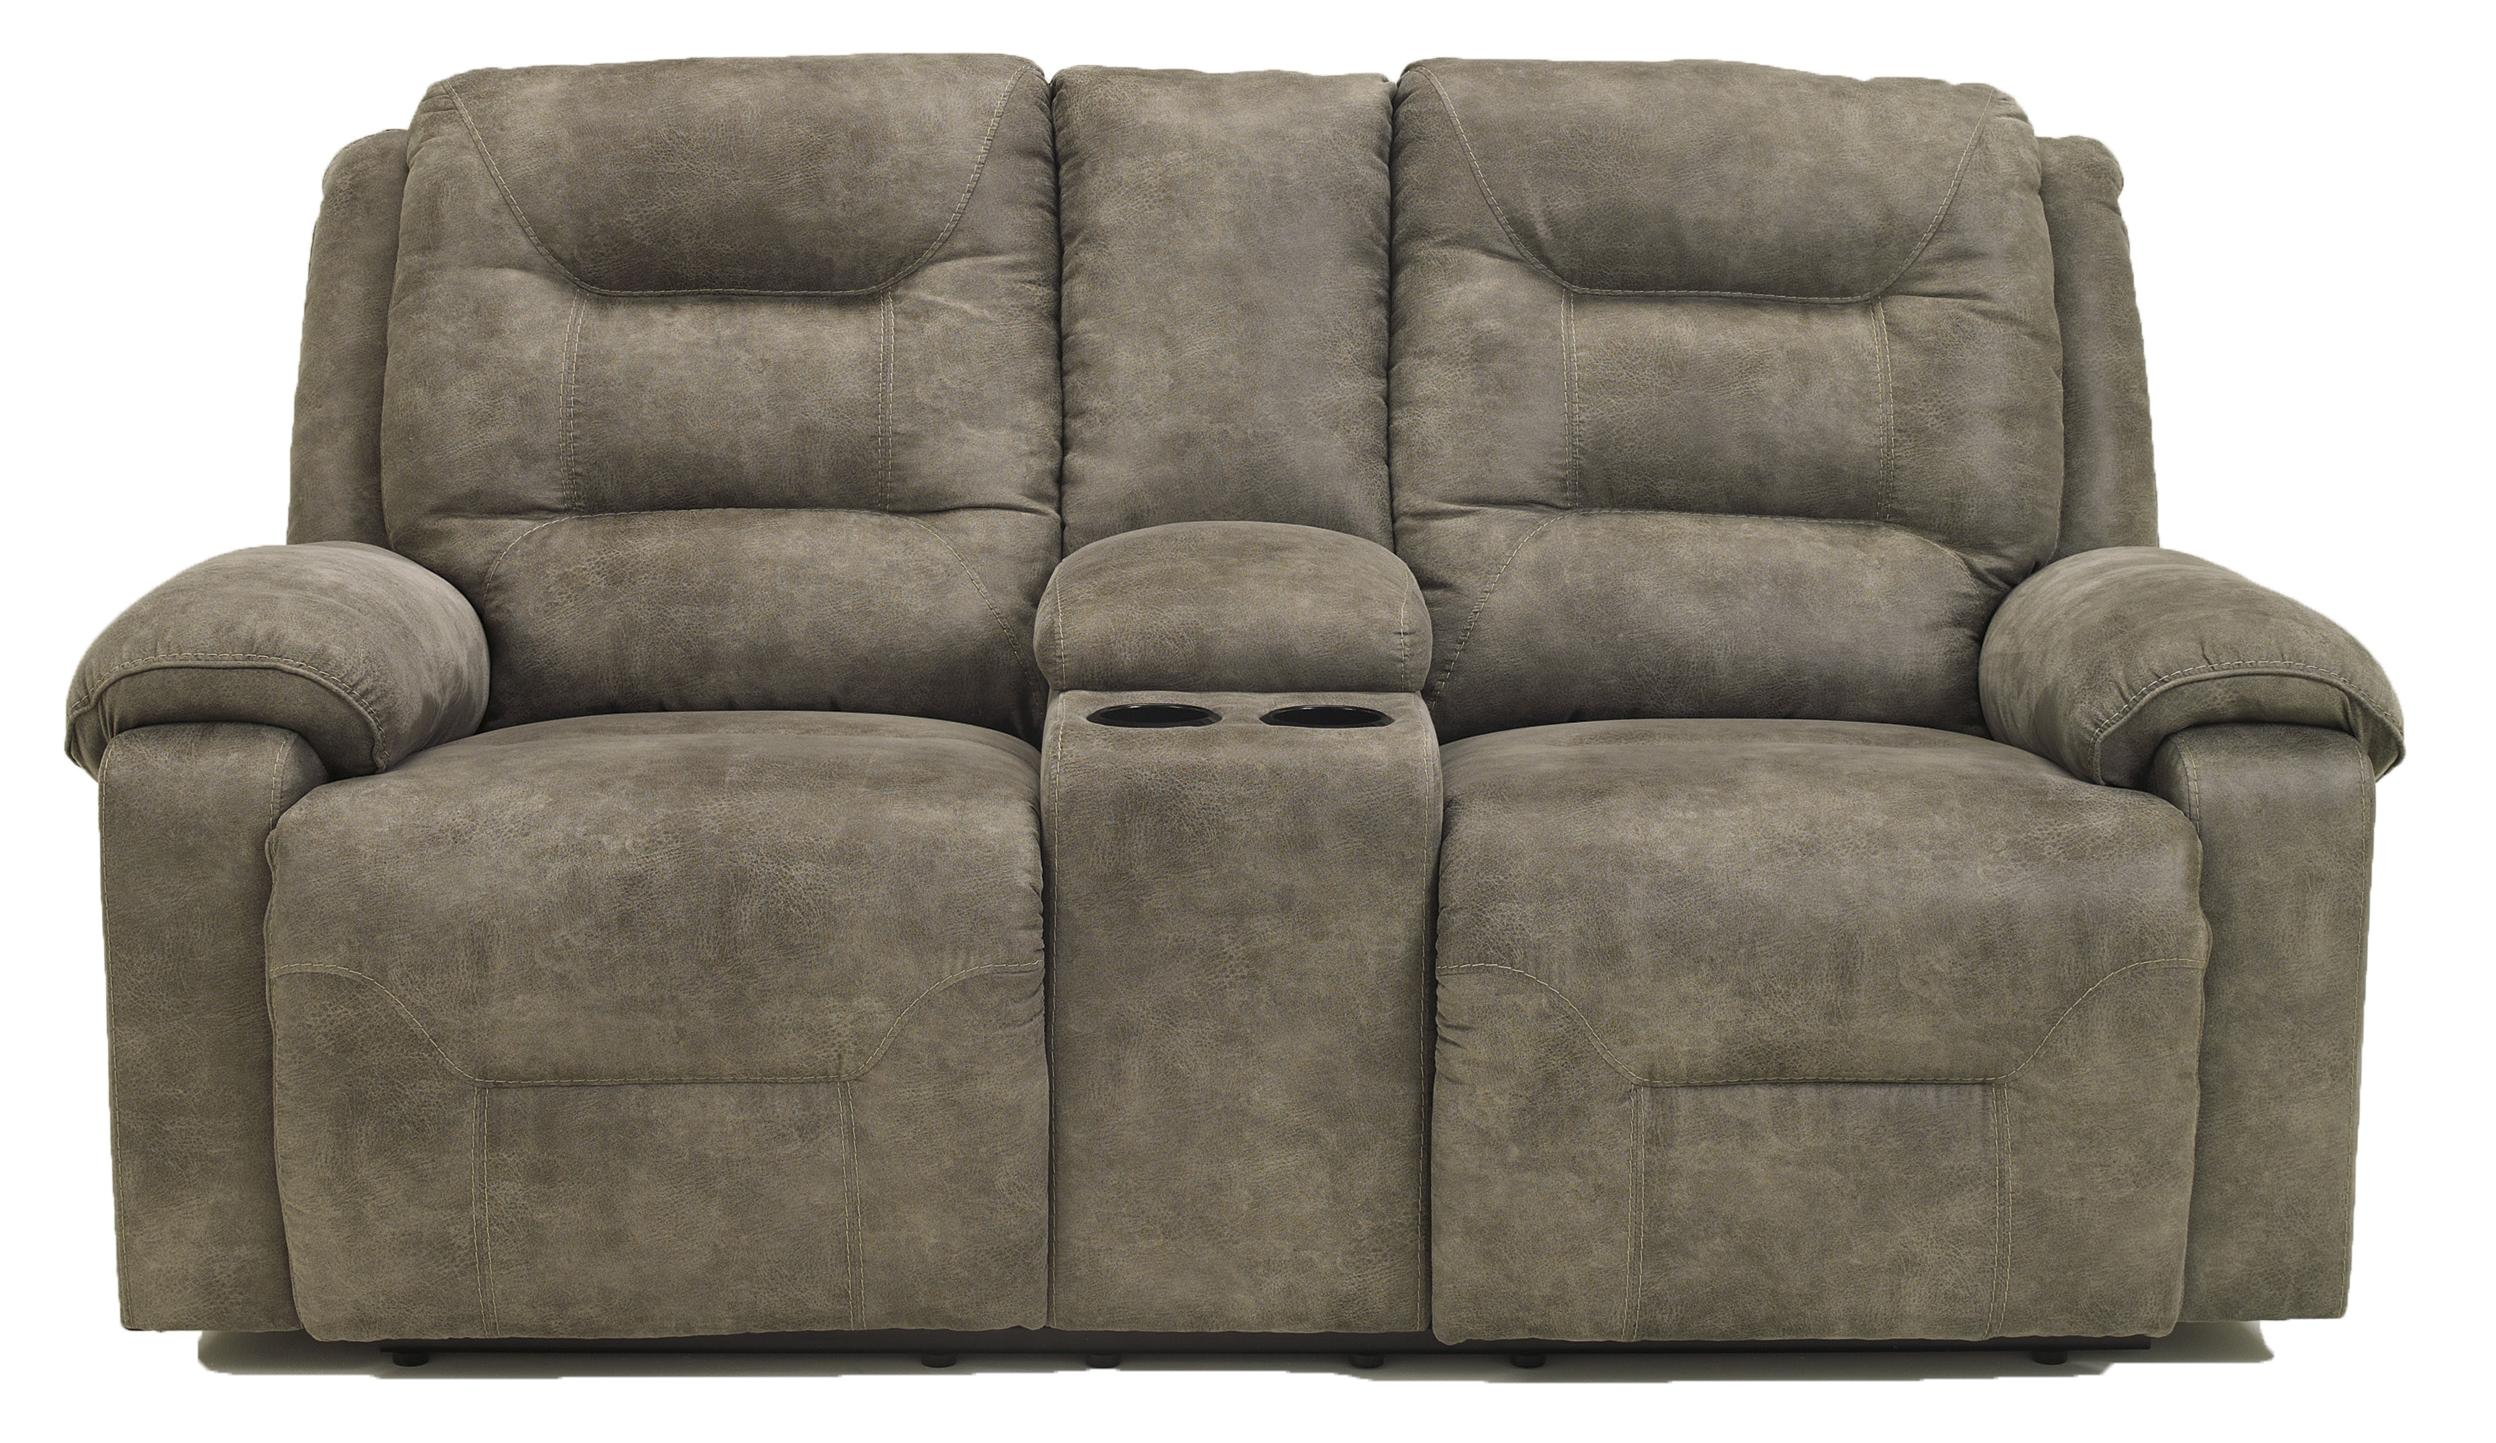 Signature Design by Ashley Rotation - Smoke Power Reclining Loveseat w/Console - Item Number: 9750196